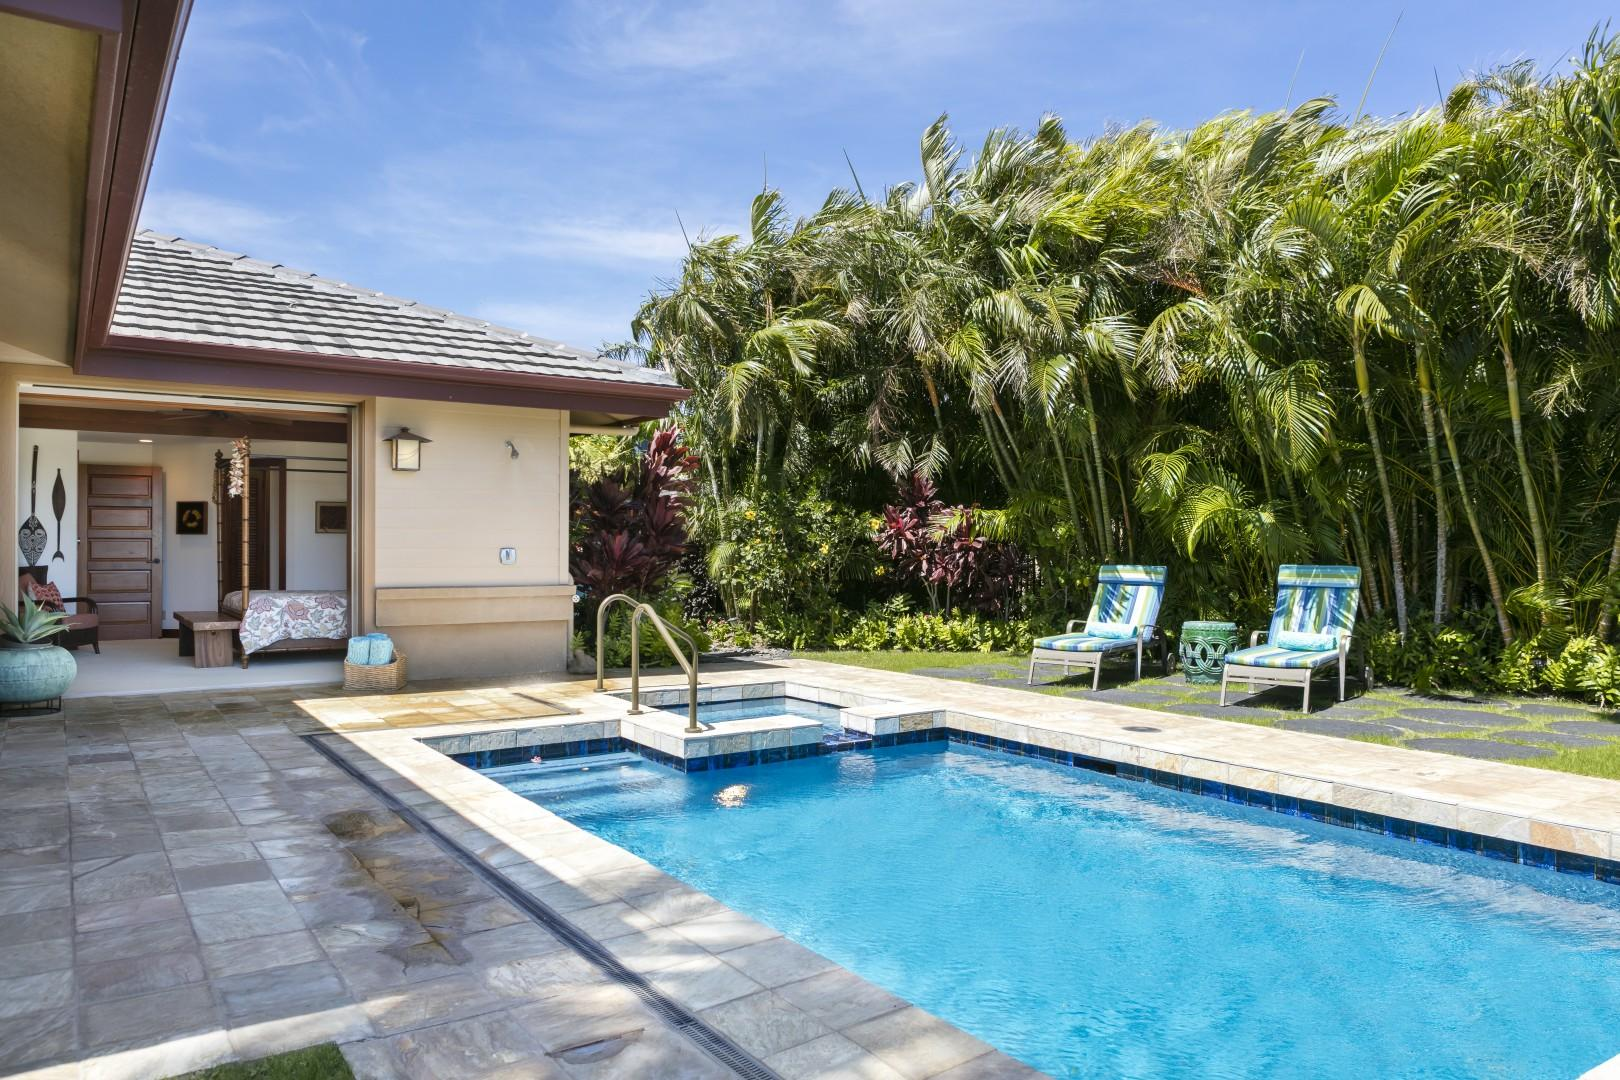 Ask about heat during the winter months for the pool